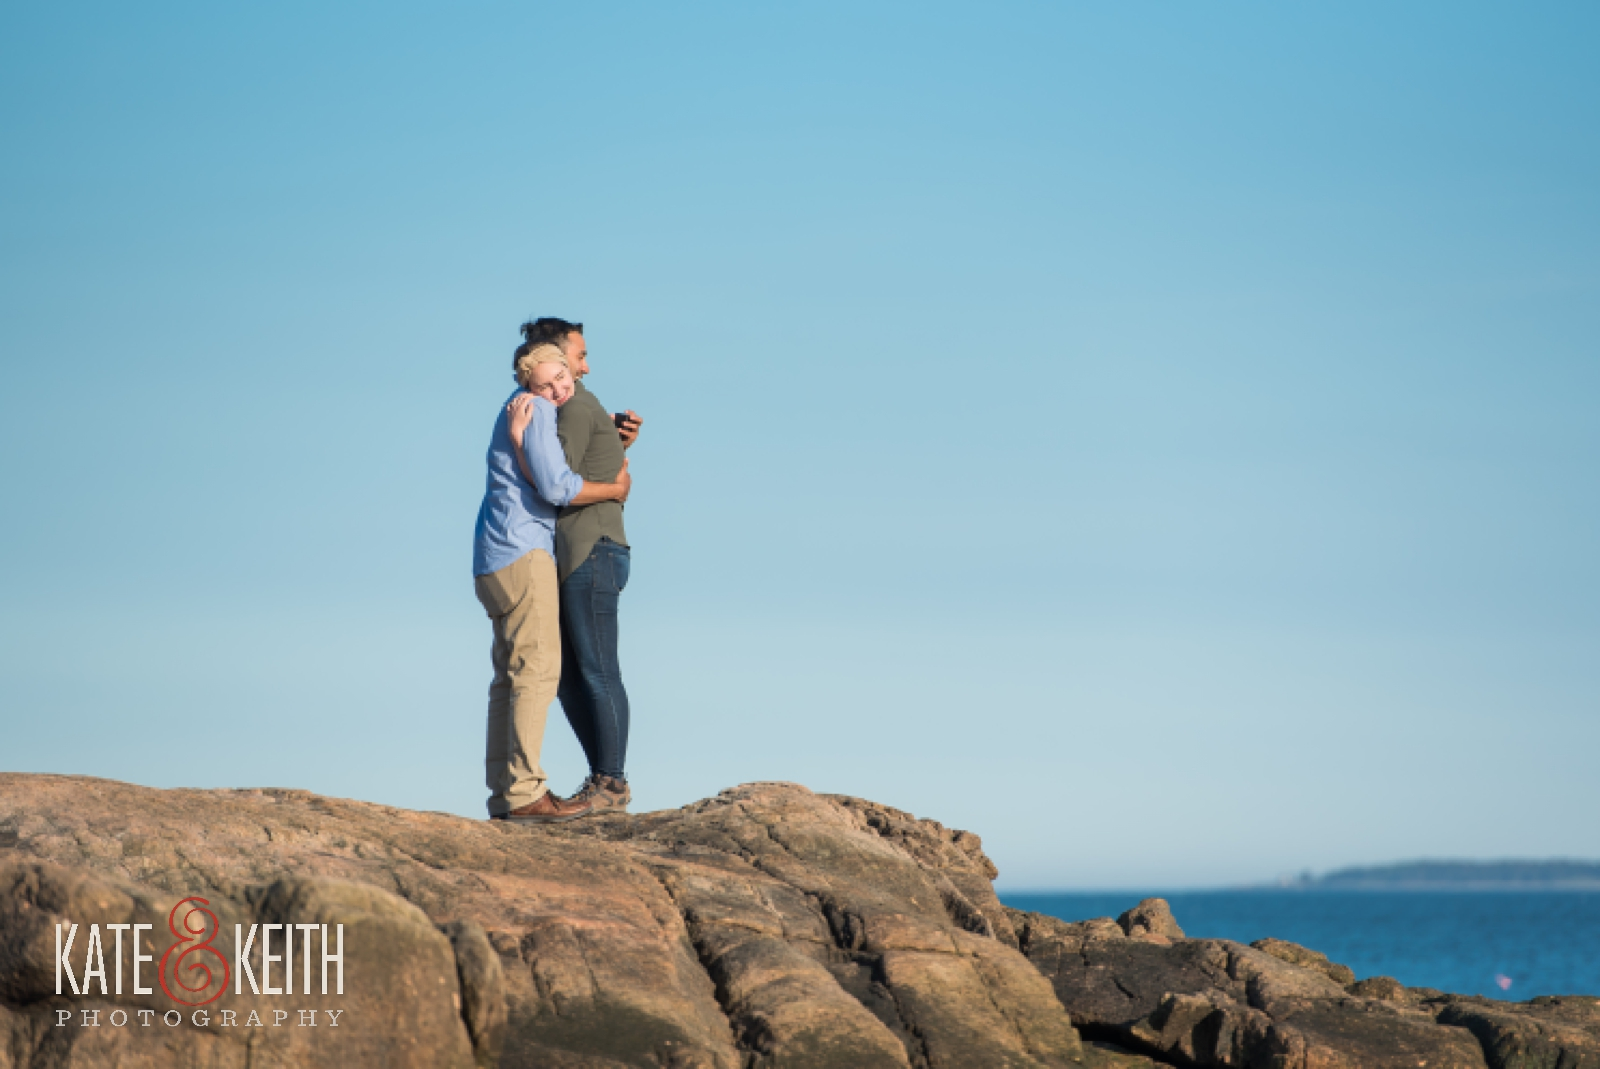 Couple celebrating engagement in Acadia National Park, Maine, Mount Desert Island, surprise proposal, wedding proposal, coast, ocean, seaside